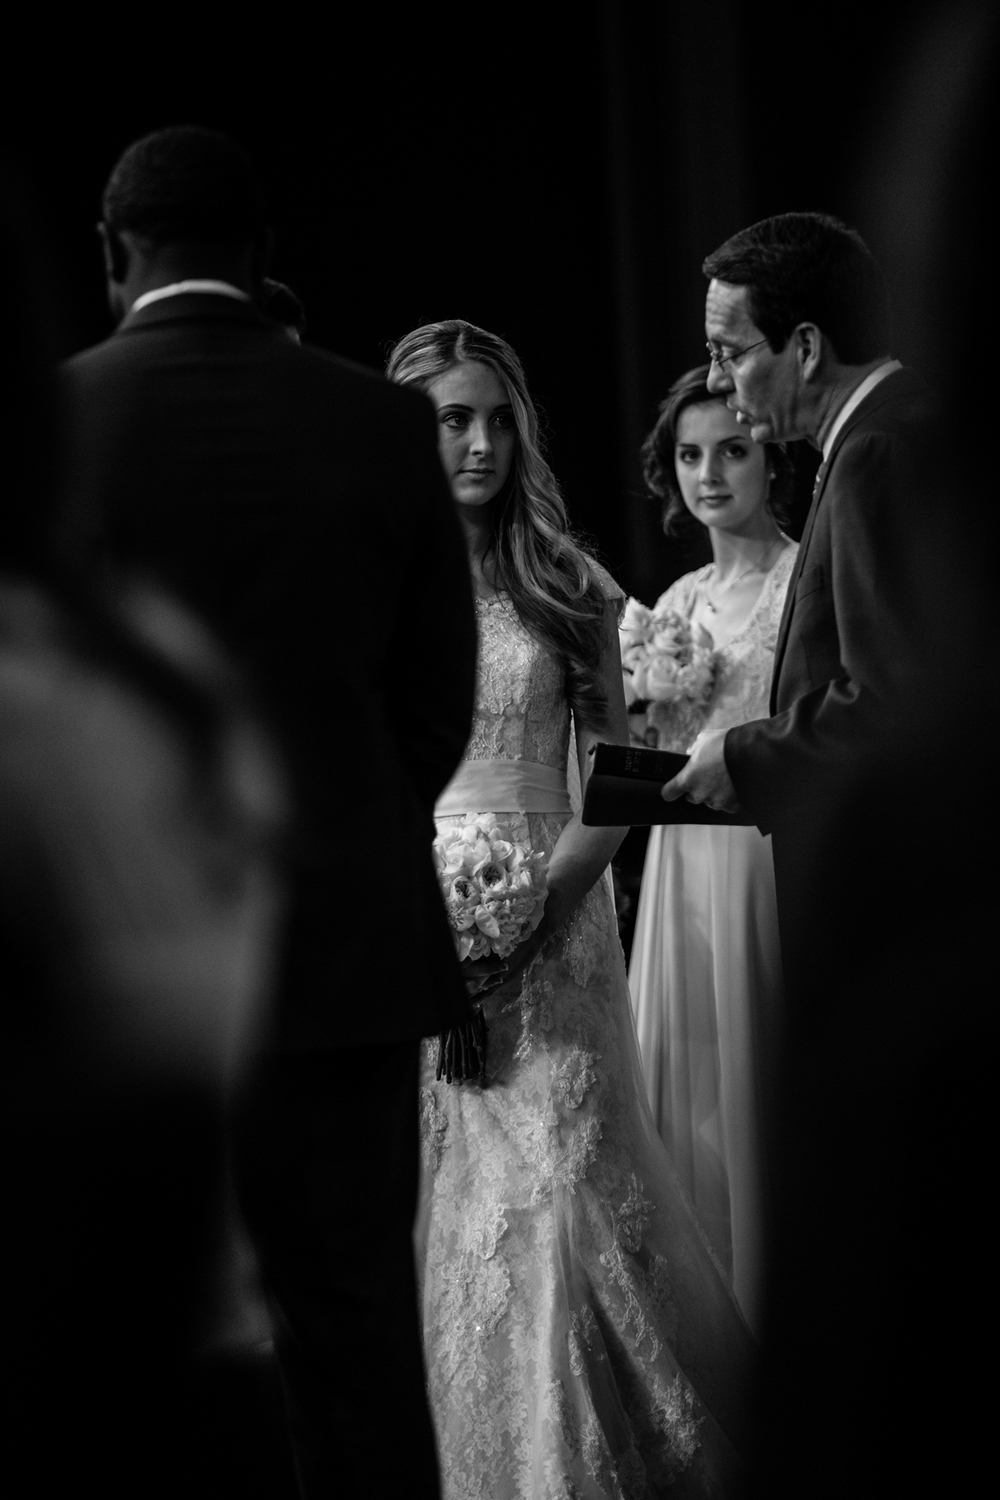 stillwater-wedding-photography-15.jpg